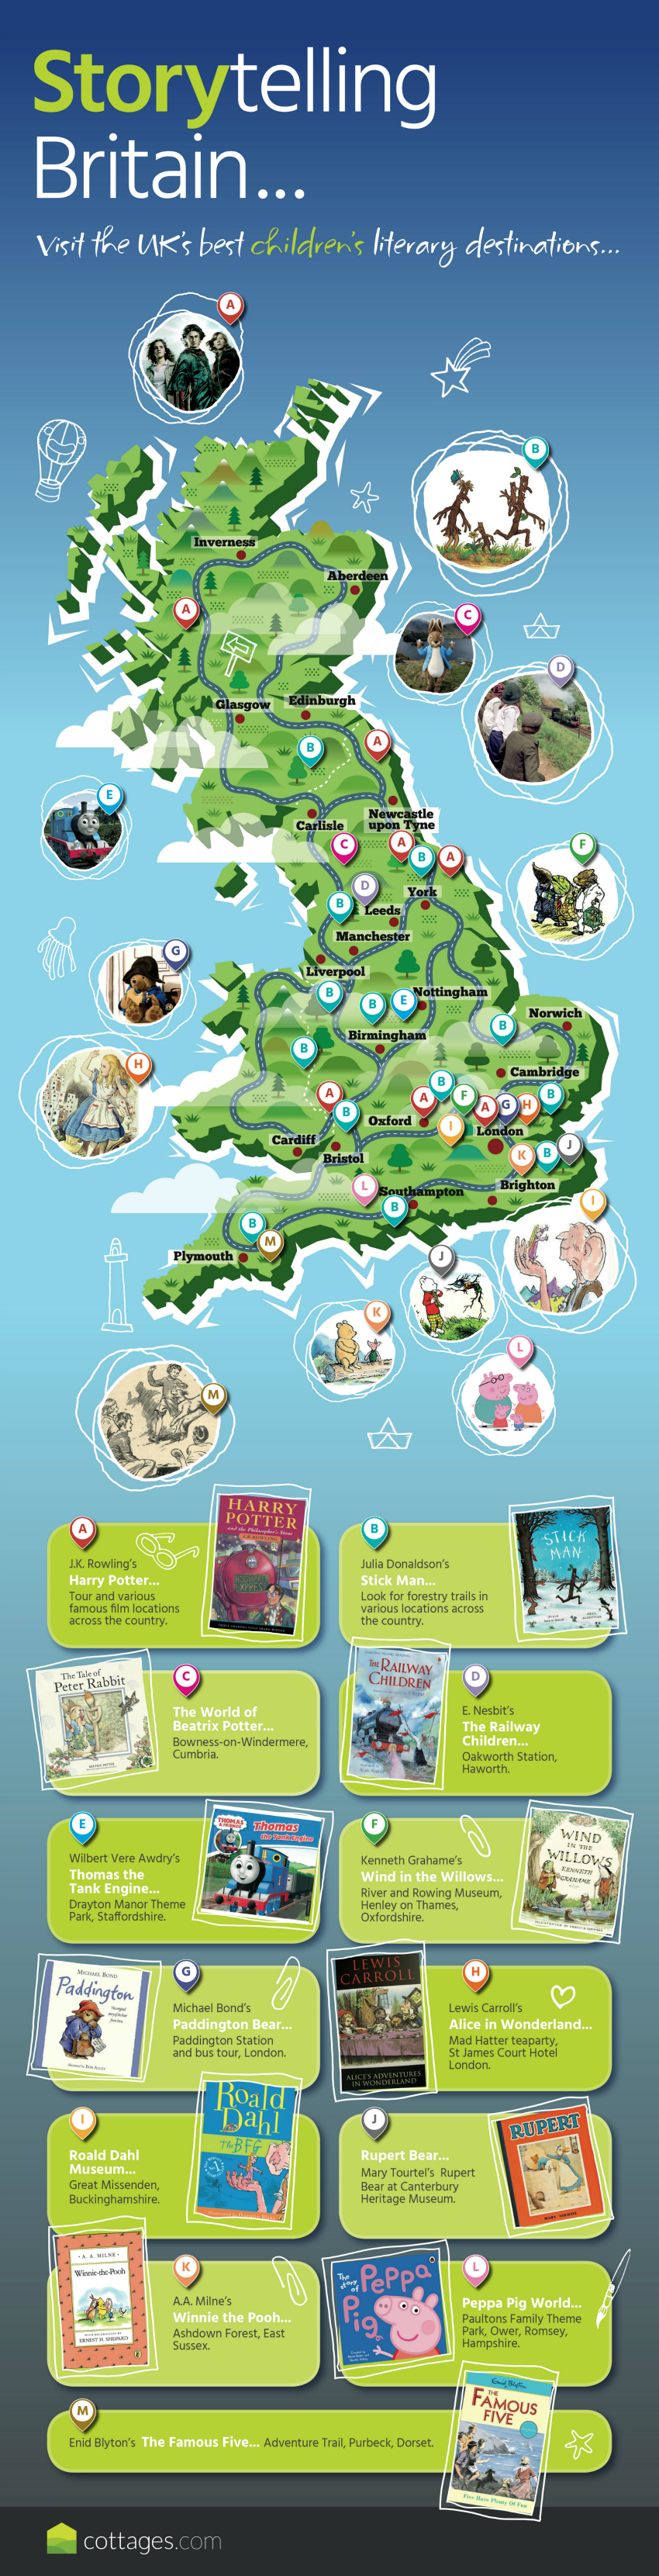 literary destinations in the UK, visit the homes and places that inspired your favourite authors